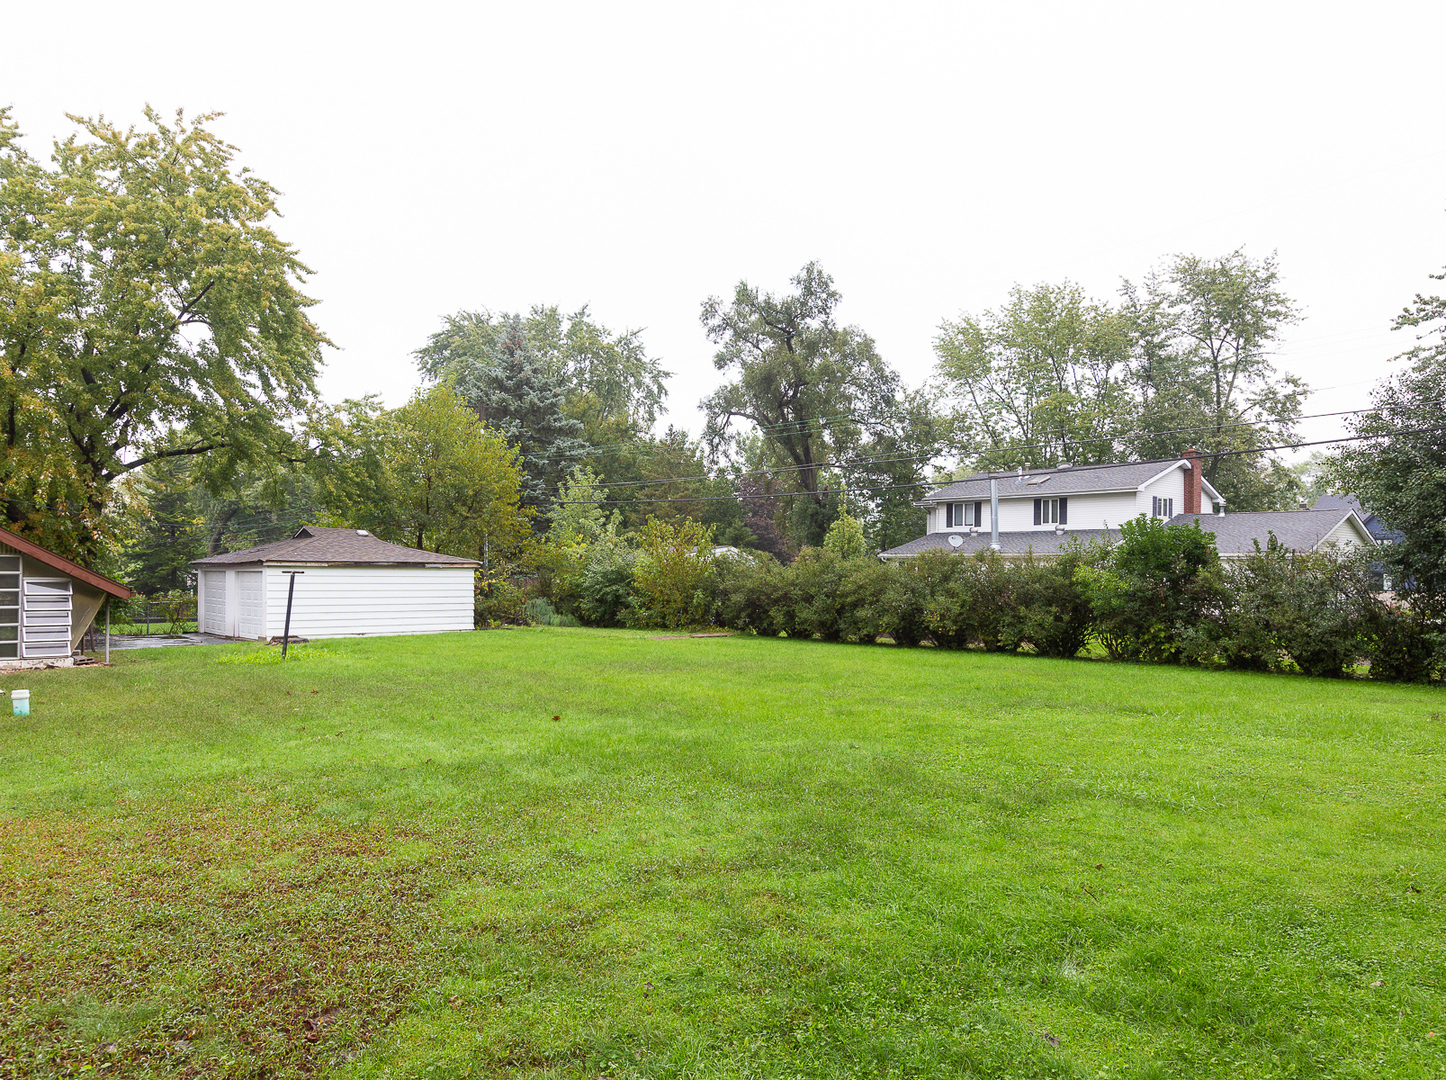 12323 South 76th, Palos Heights, Illinois, 60463